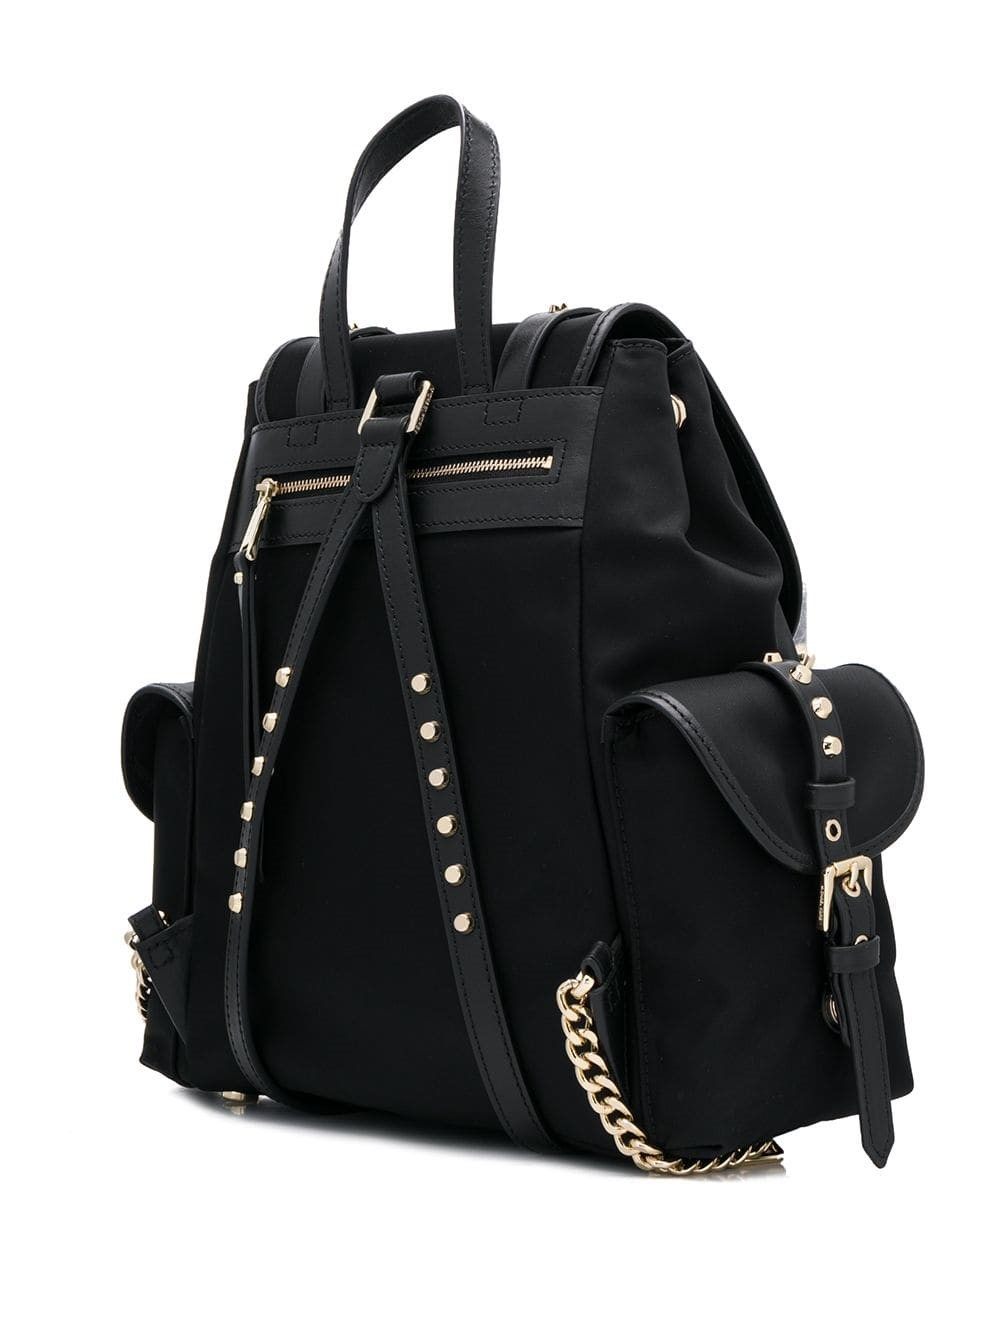 1576e98faac667 michael kors mk BACKPACK available on montiboutique.com - 27920